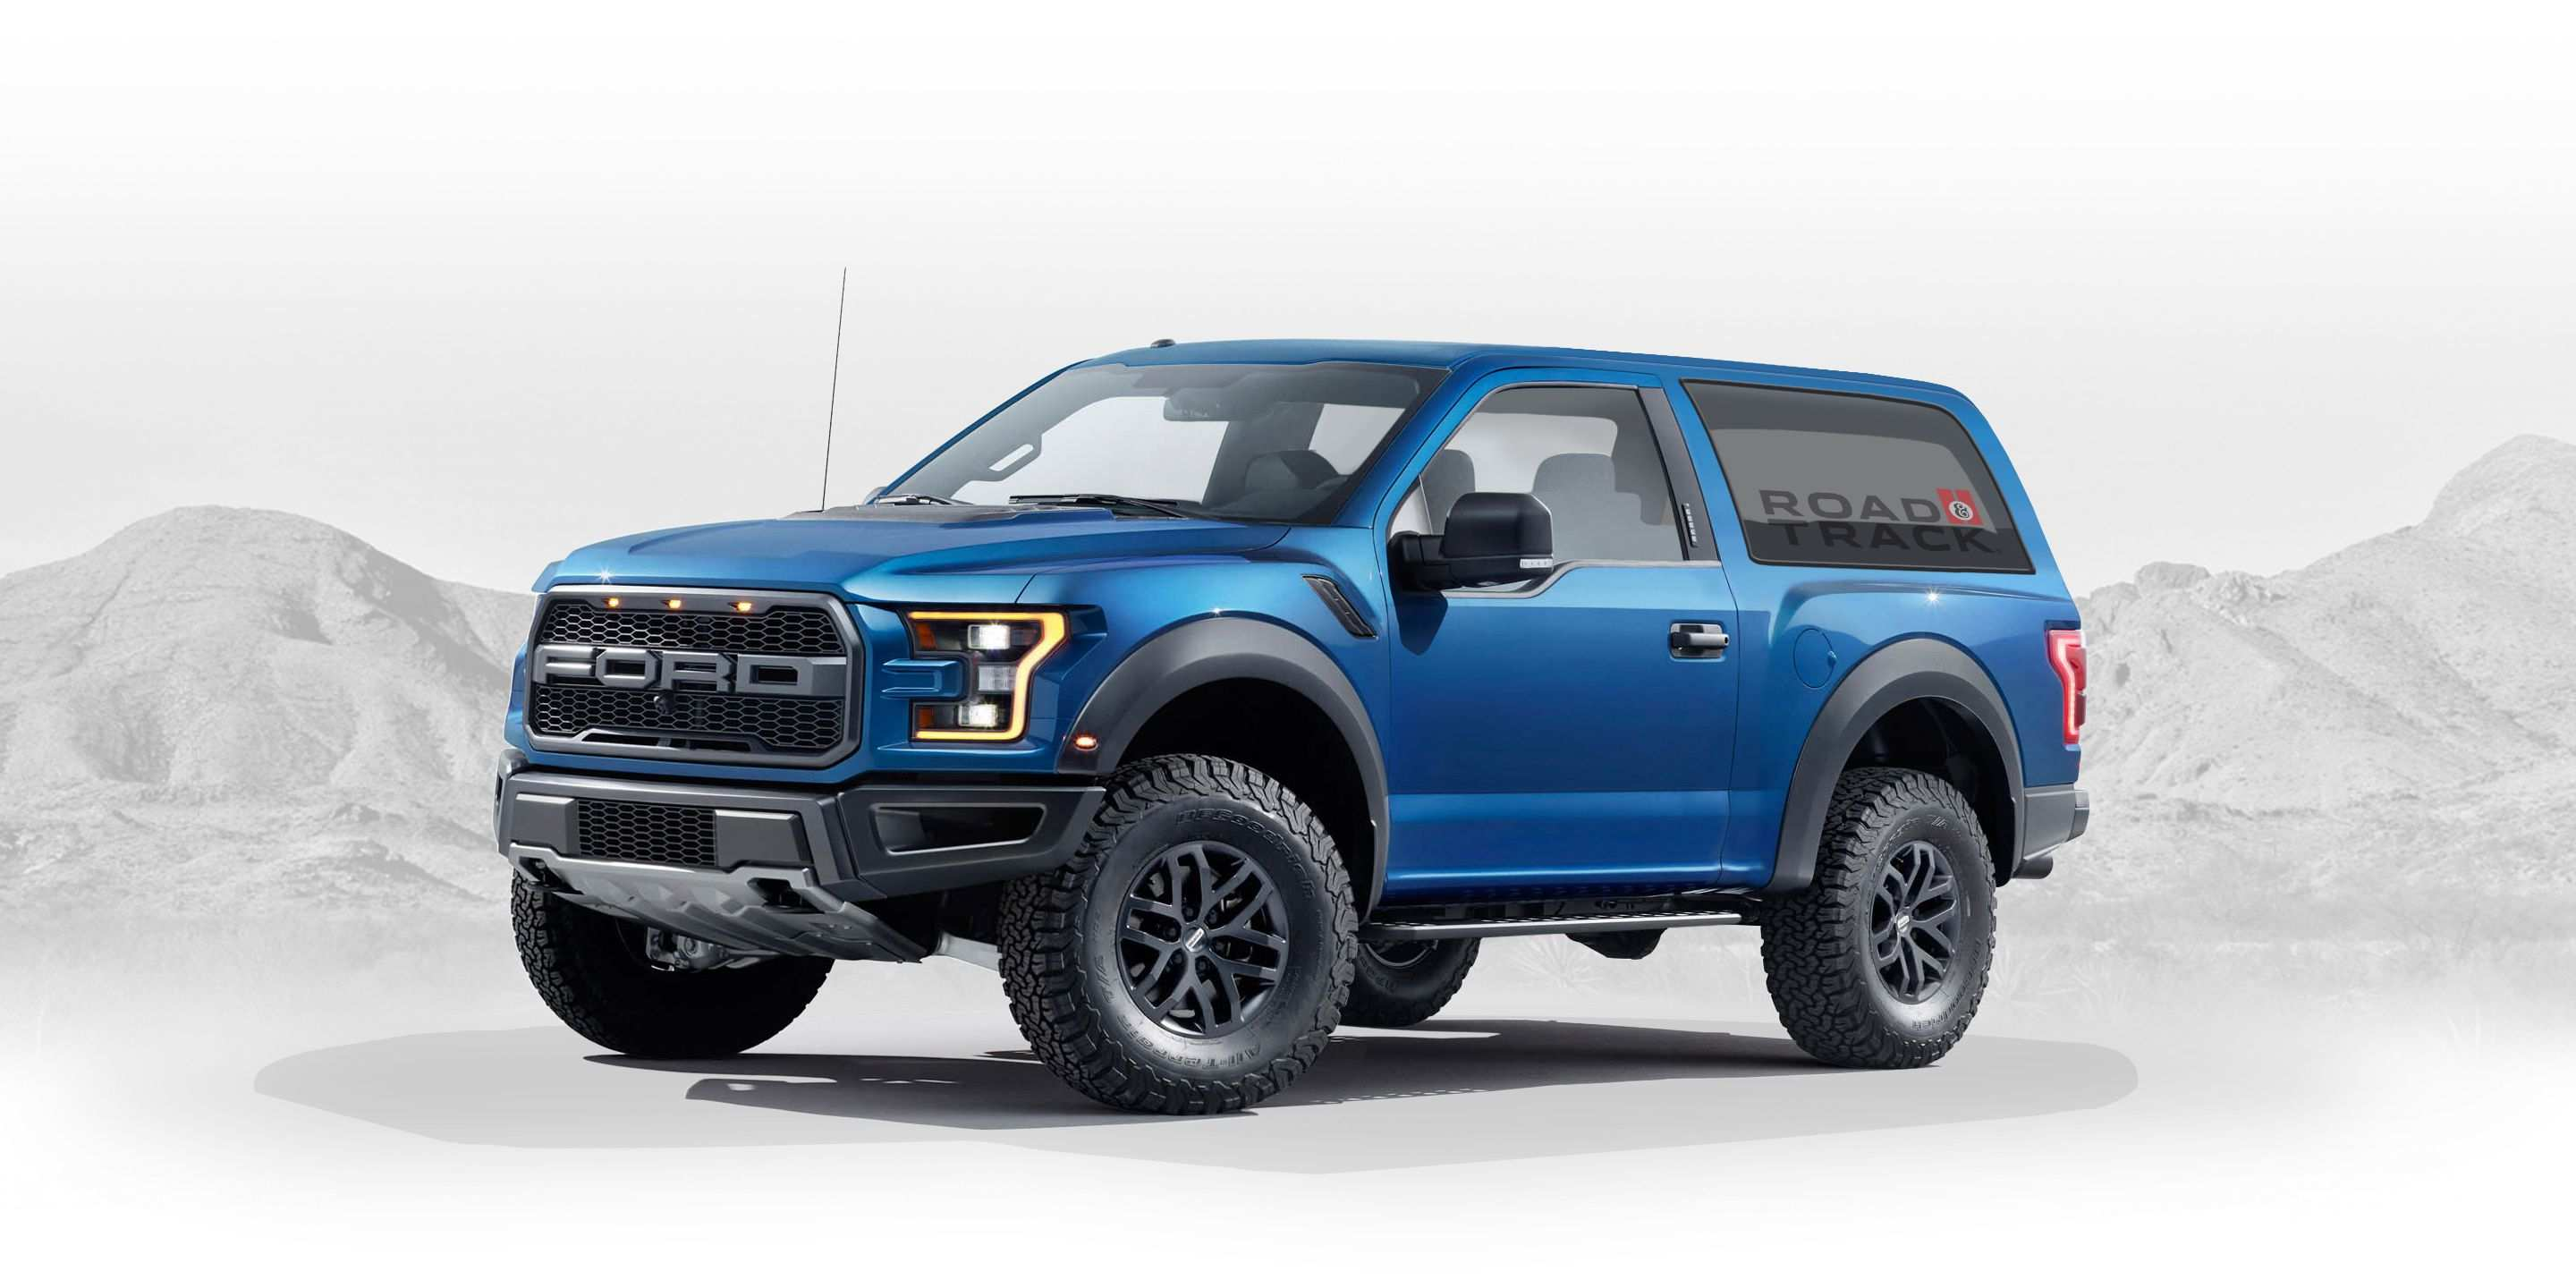 26 New When Can You Buy A 2020 Ford Bronco Model by When Can You Buy A 2020 Ford Bronco